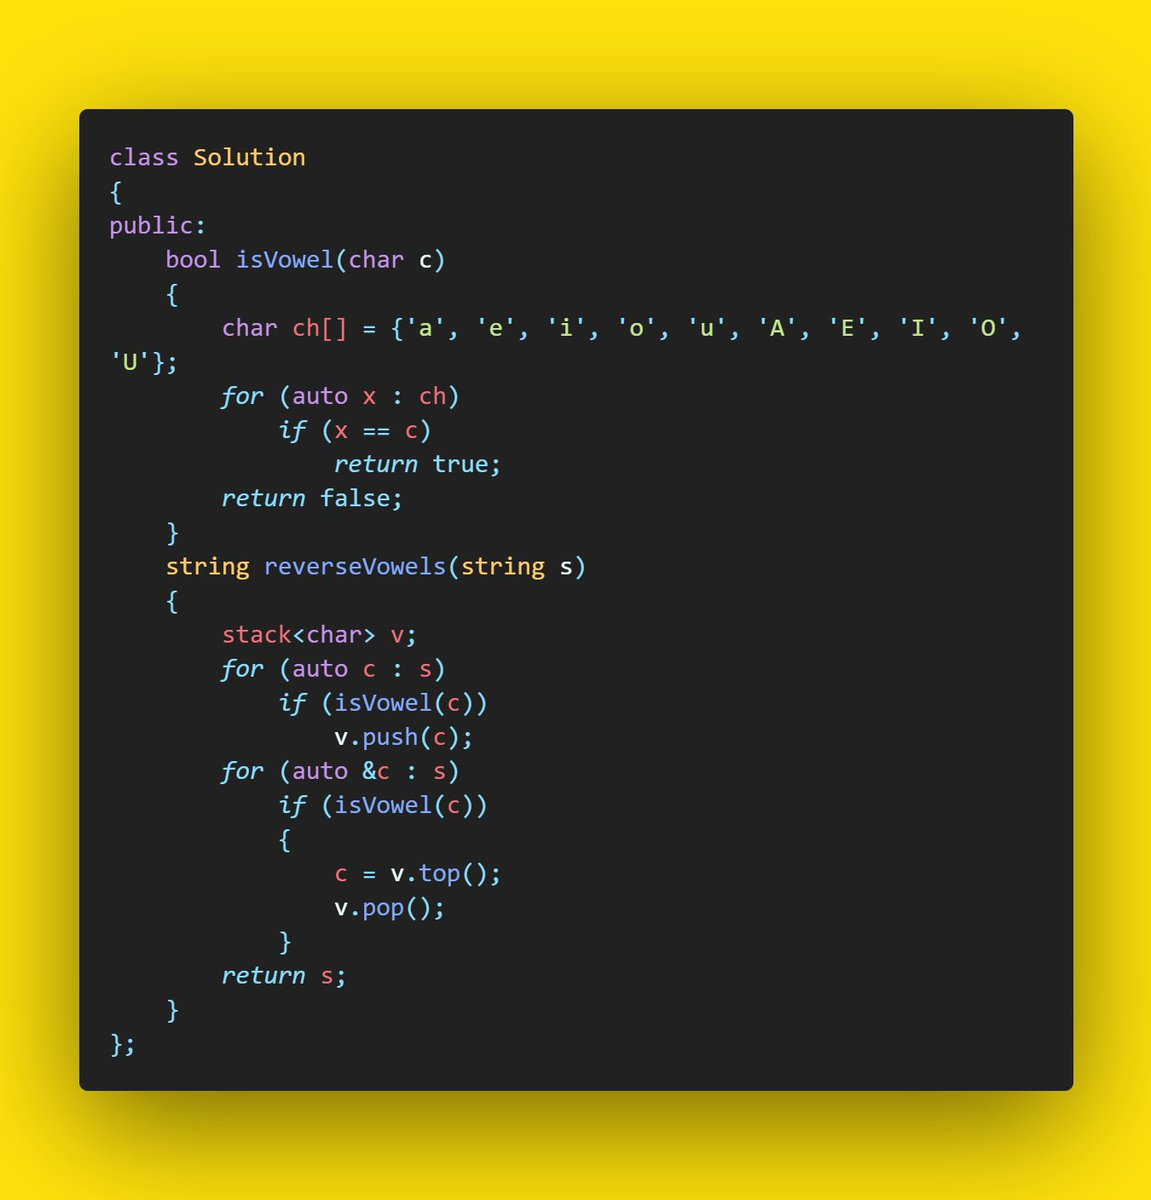 Day 155: LeetCode: 345. Reverse Vowels of a String  #coding #everyday #coder #codinglife #daily #myday #programminglife #programmer #screen #developer #love #100daysofcode #programming #program #365codingphasechallenge #programmer #code #codingphase #codingpicspic.twitter.com/PgqD2rfjU3